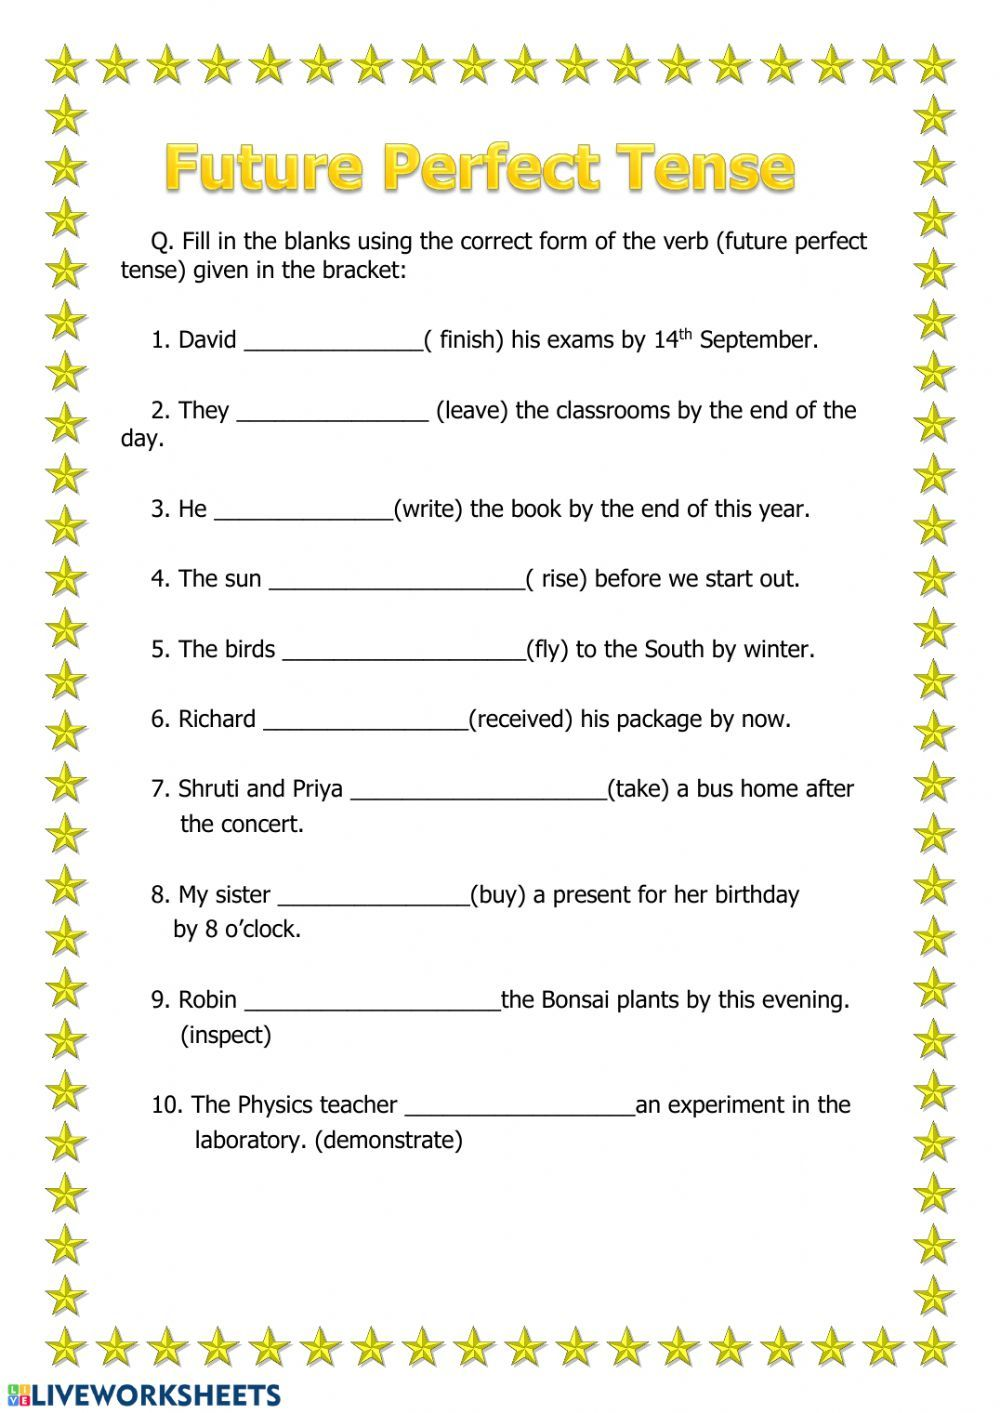 Future perfect interactive and downloadable worksheet. You